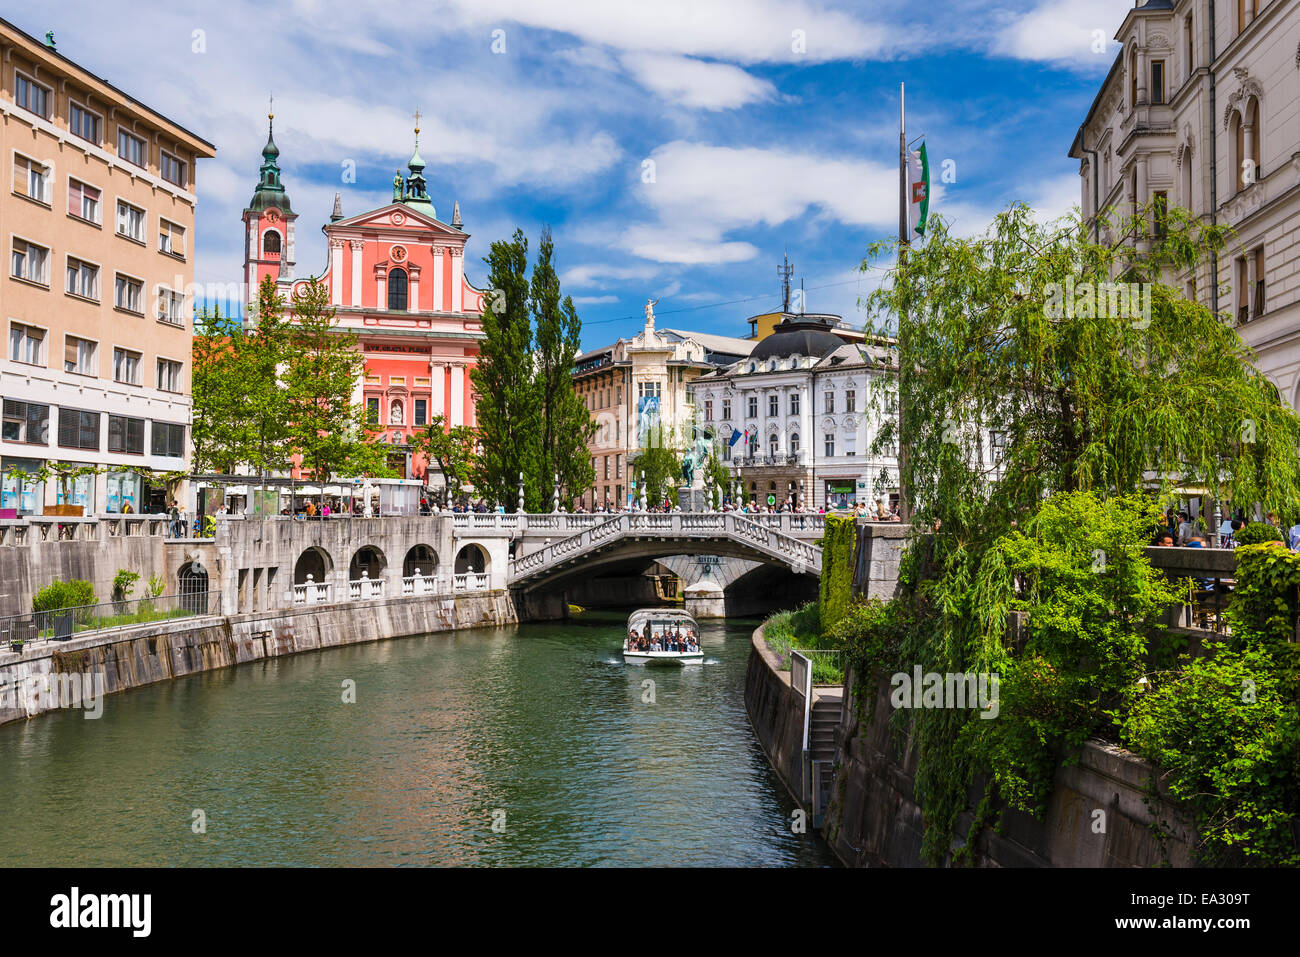 Ljubljanica River, Ljubljana triple bridge (Tromostovje) and the Franciscan Church of the Annunciation, Ljubljana, - Stock Image